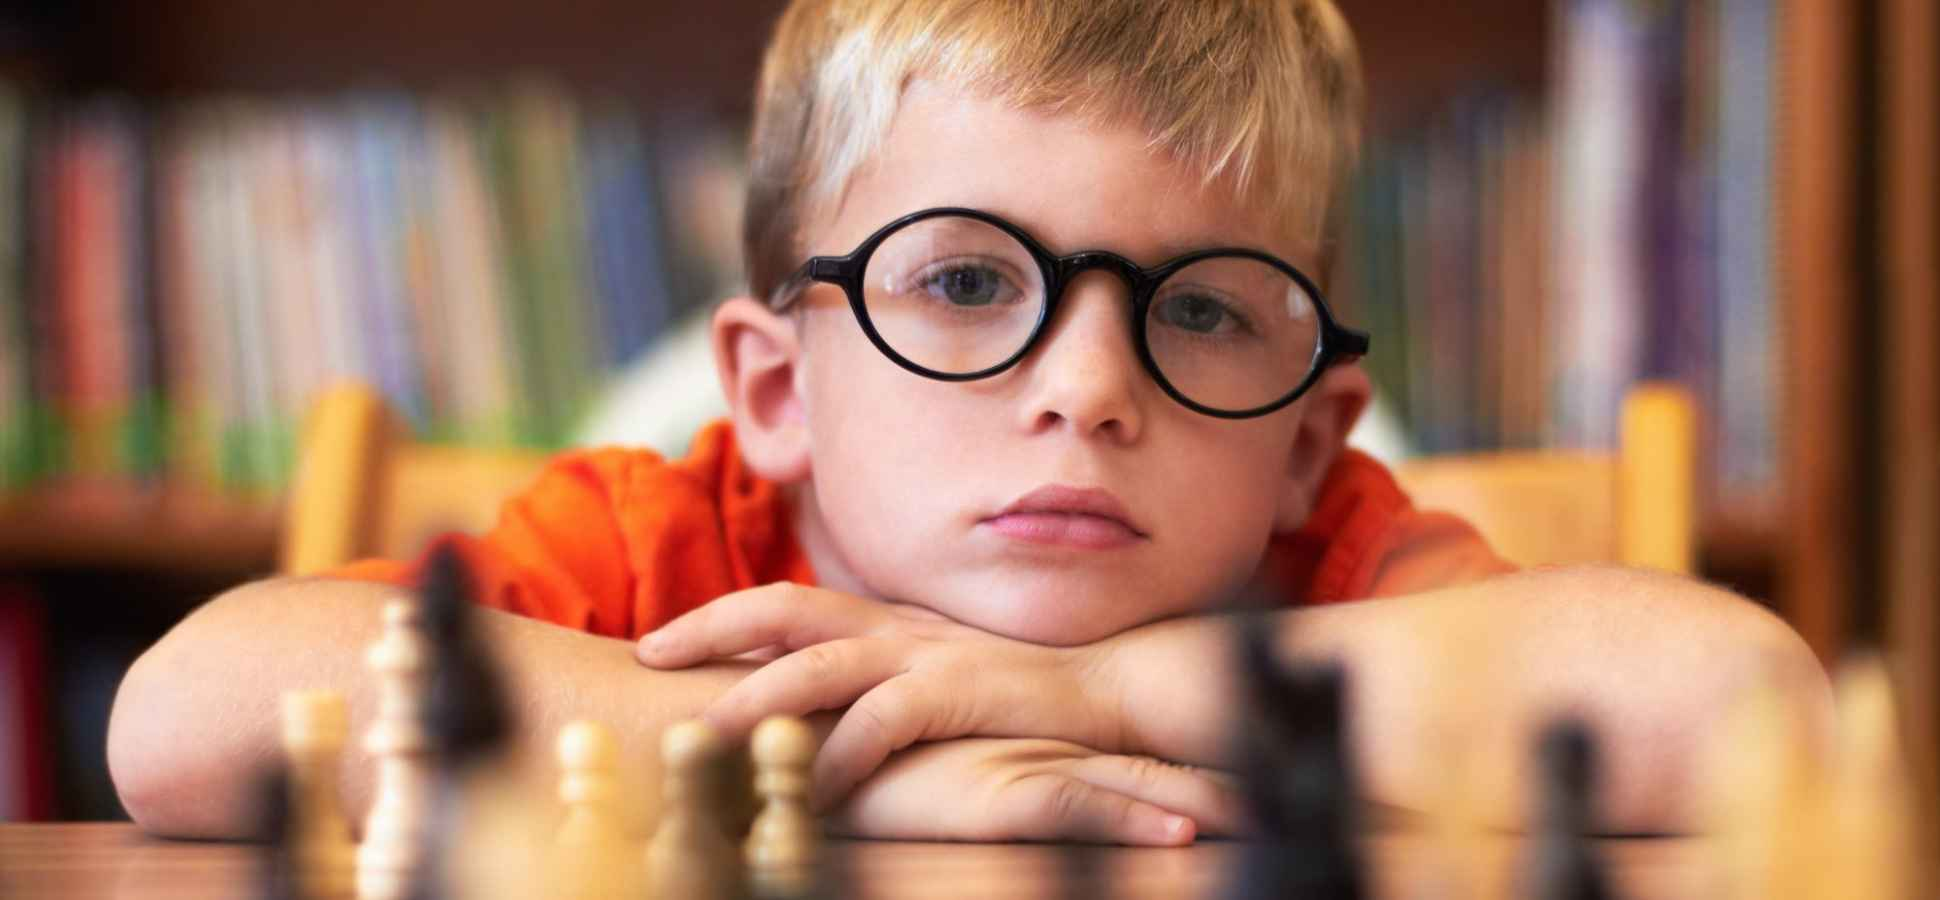 Want to Raise Smart Kids? Stop Letting Them Win at Games